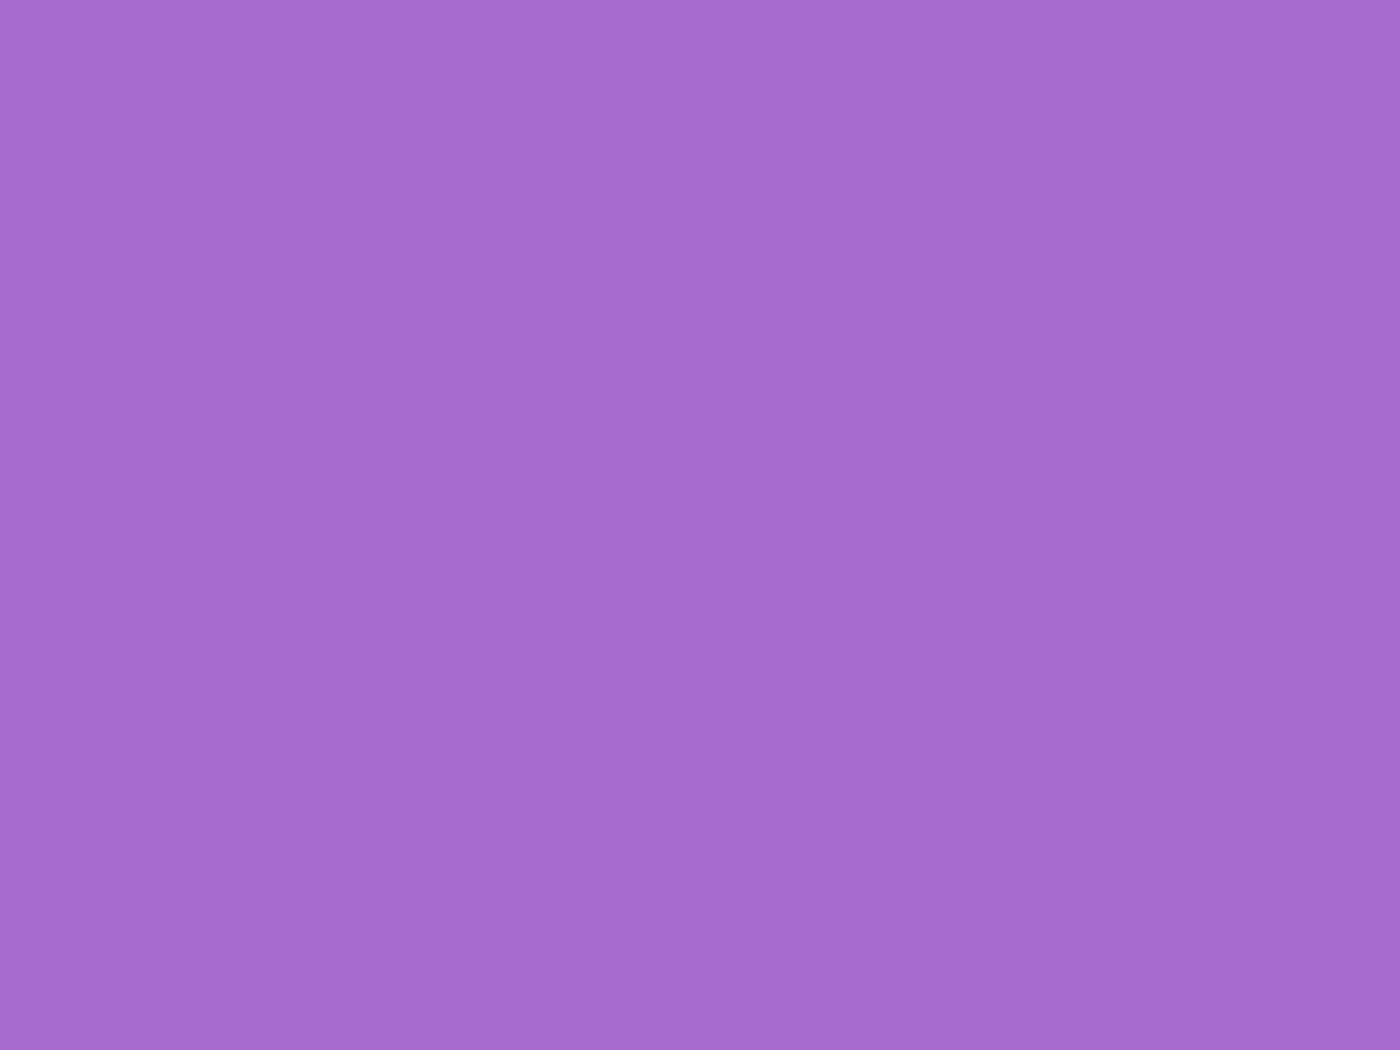 1400x1050 Rich Lavender Solid Color Background